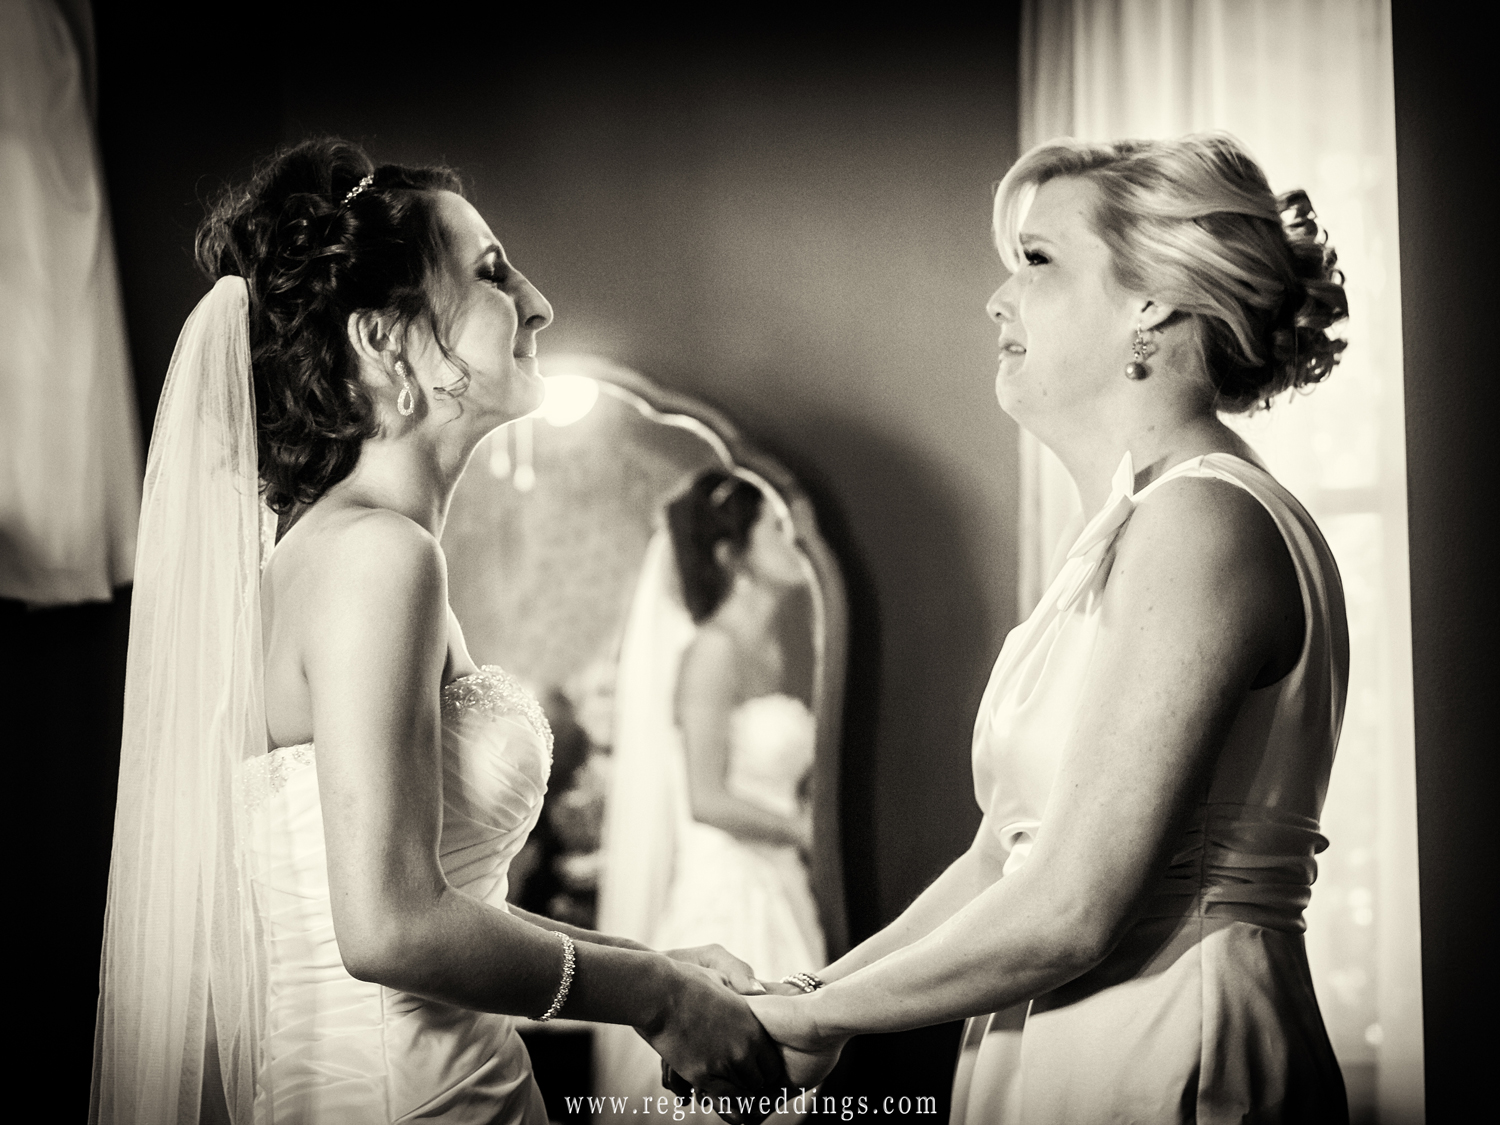 The maid of honor tears up as her best friend gets into her wedding dress on the morning of her June wedding.